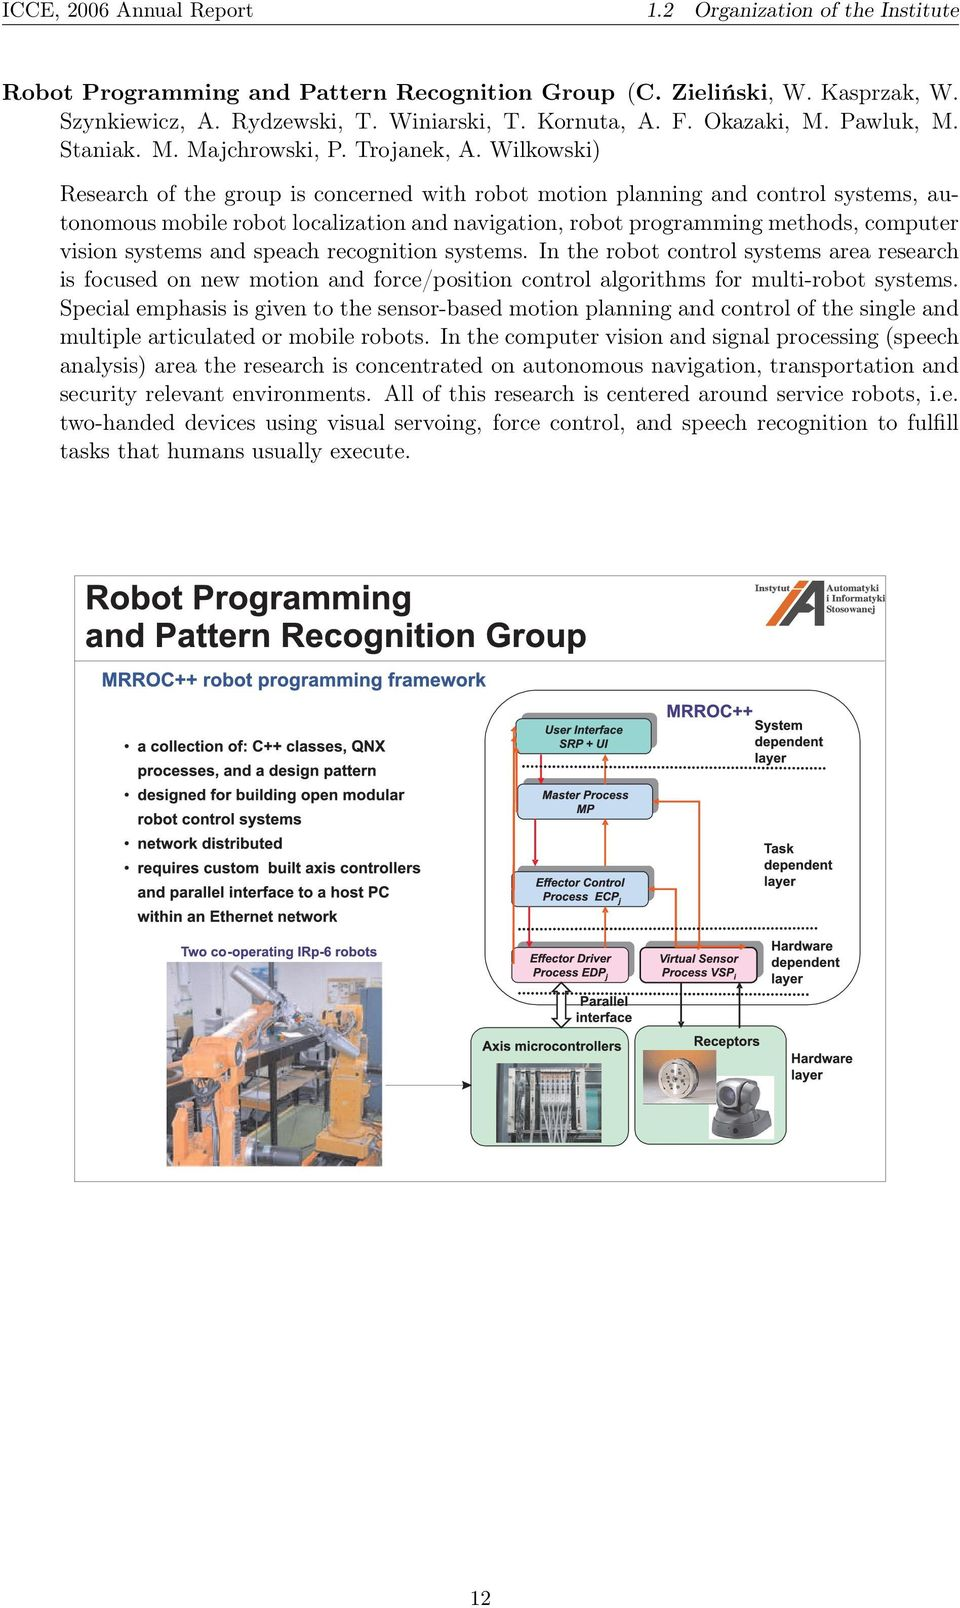 Wilkowski) Research of the group is concerned with robot motion planning and control systems, autonomous mobile robot localization and navigation, robot programming methods, computer vision systems